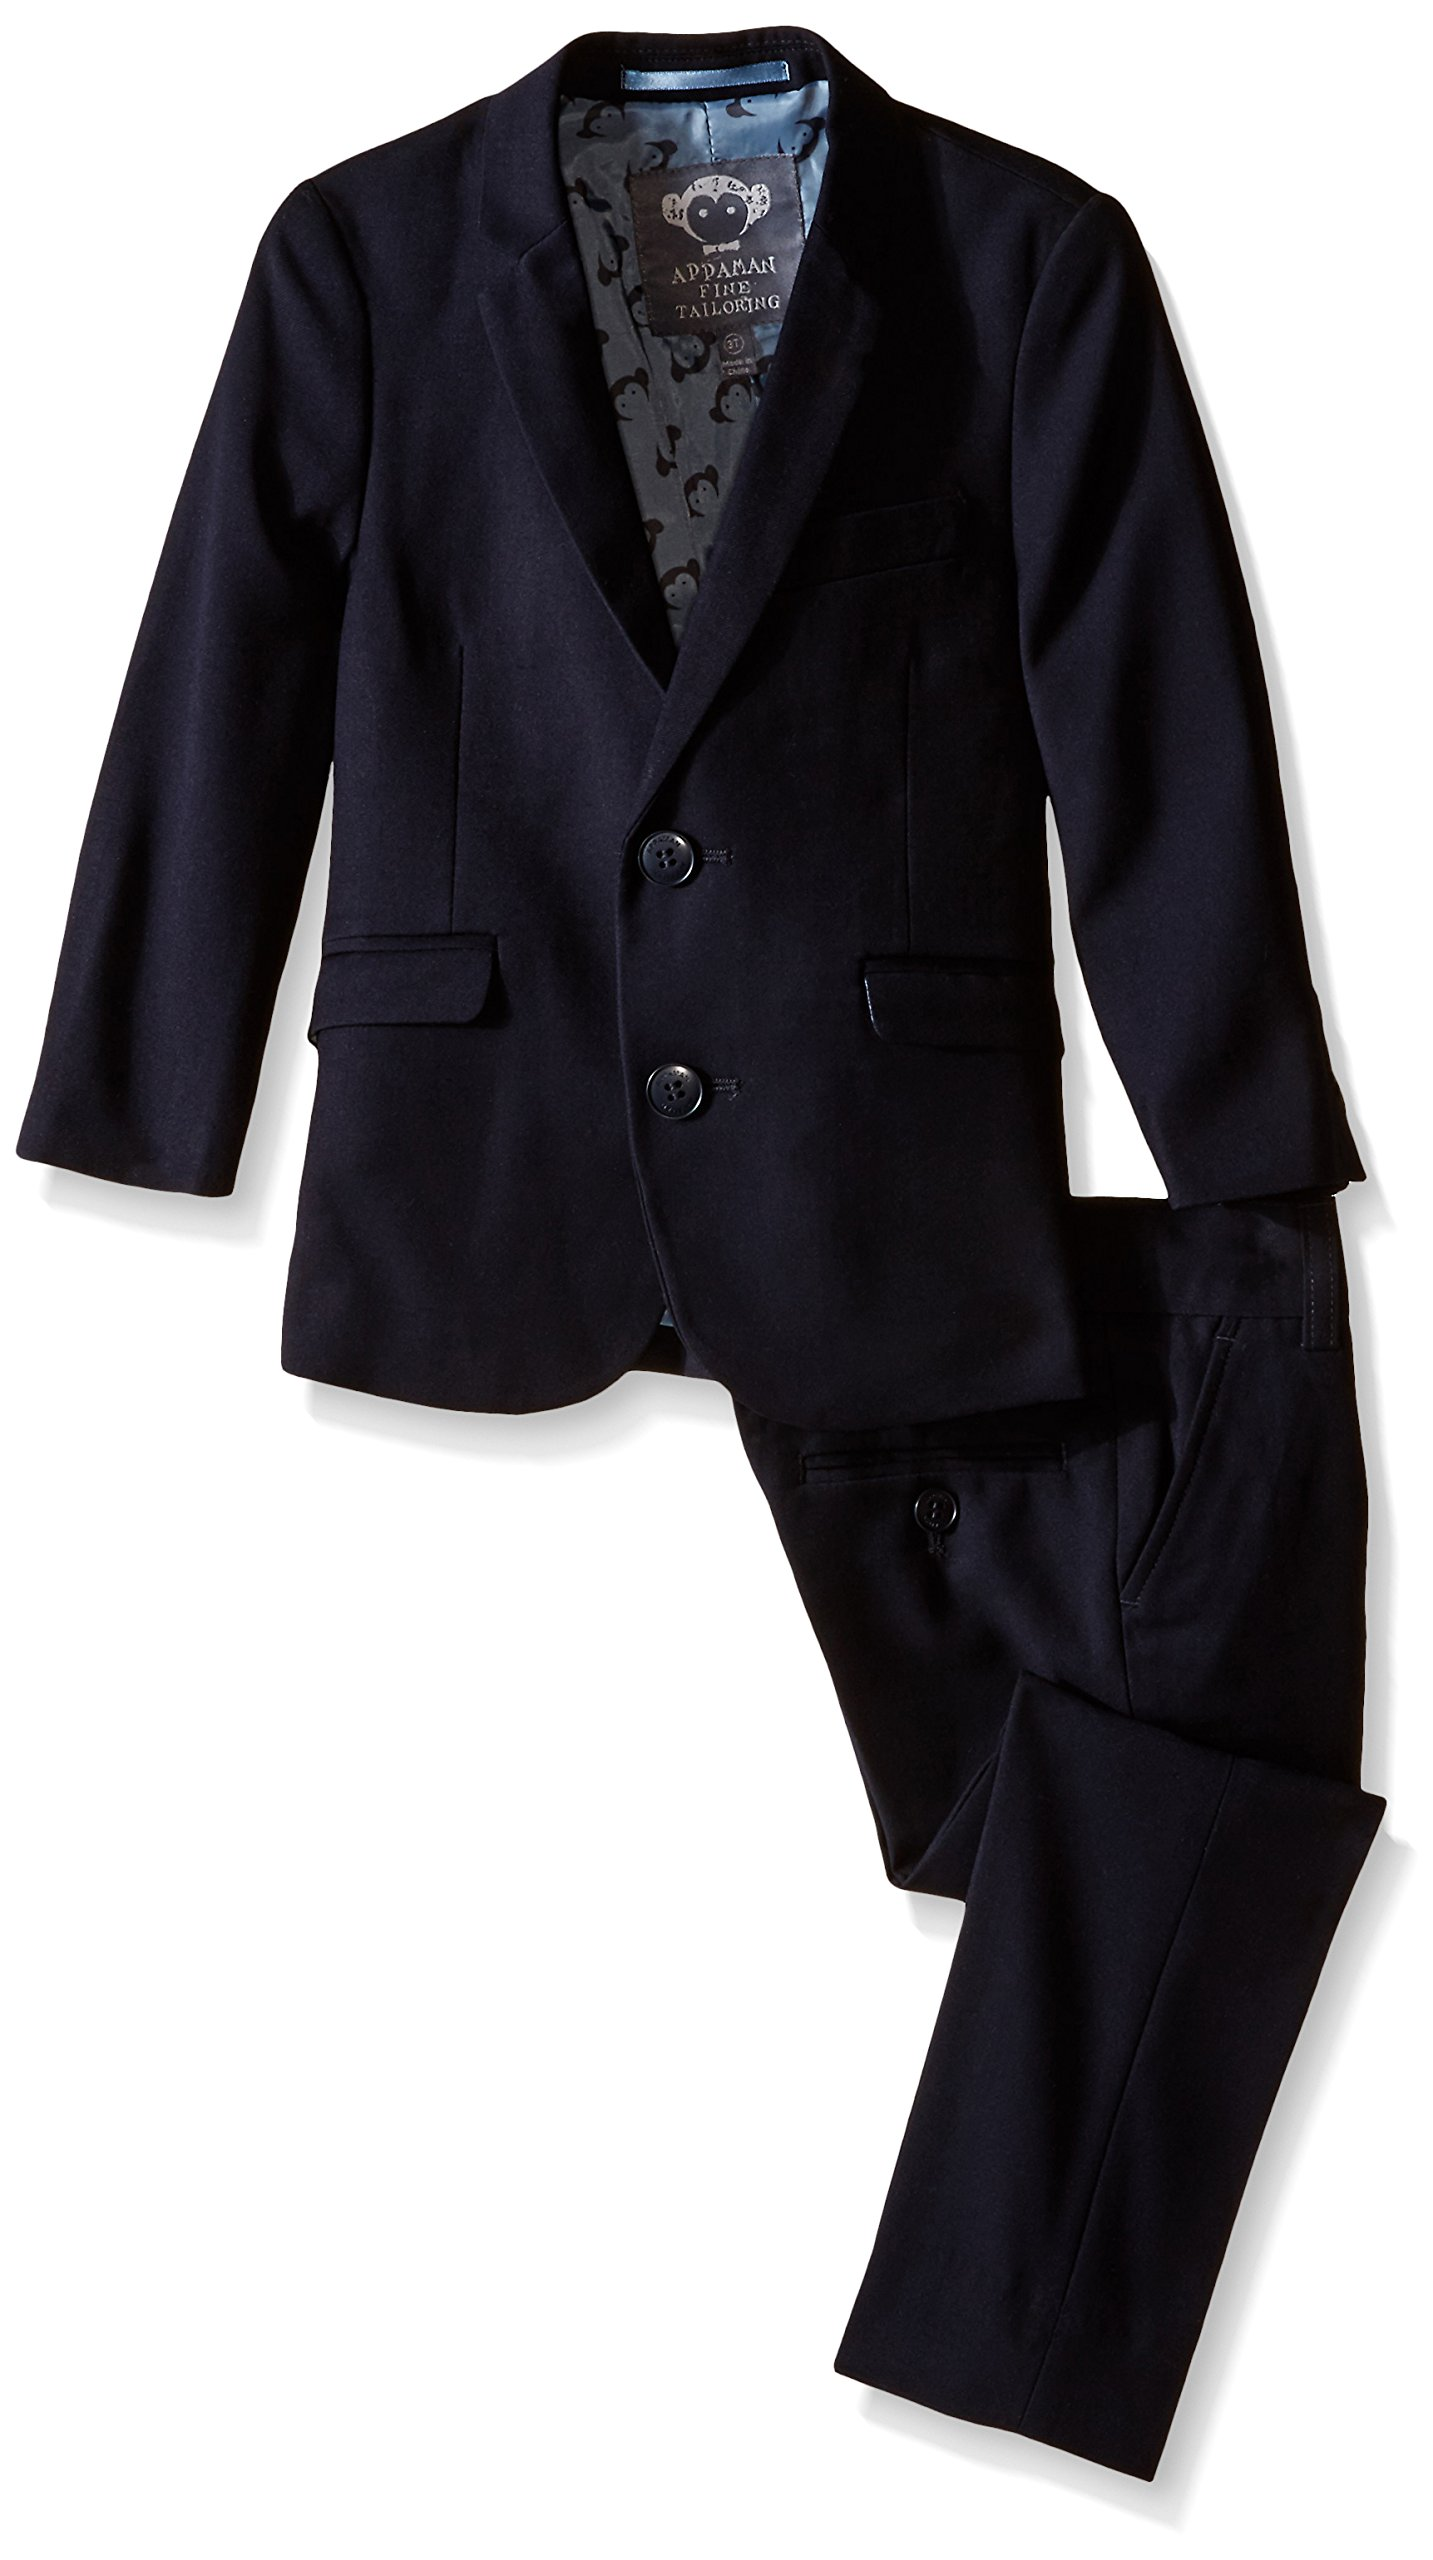 Appaman Little Boys' Toddler Core Two Piece Classic Mod Suit, Navy, 2 by Appaman